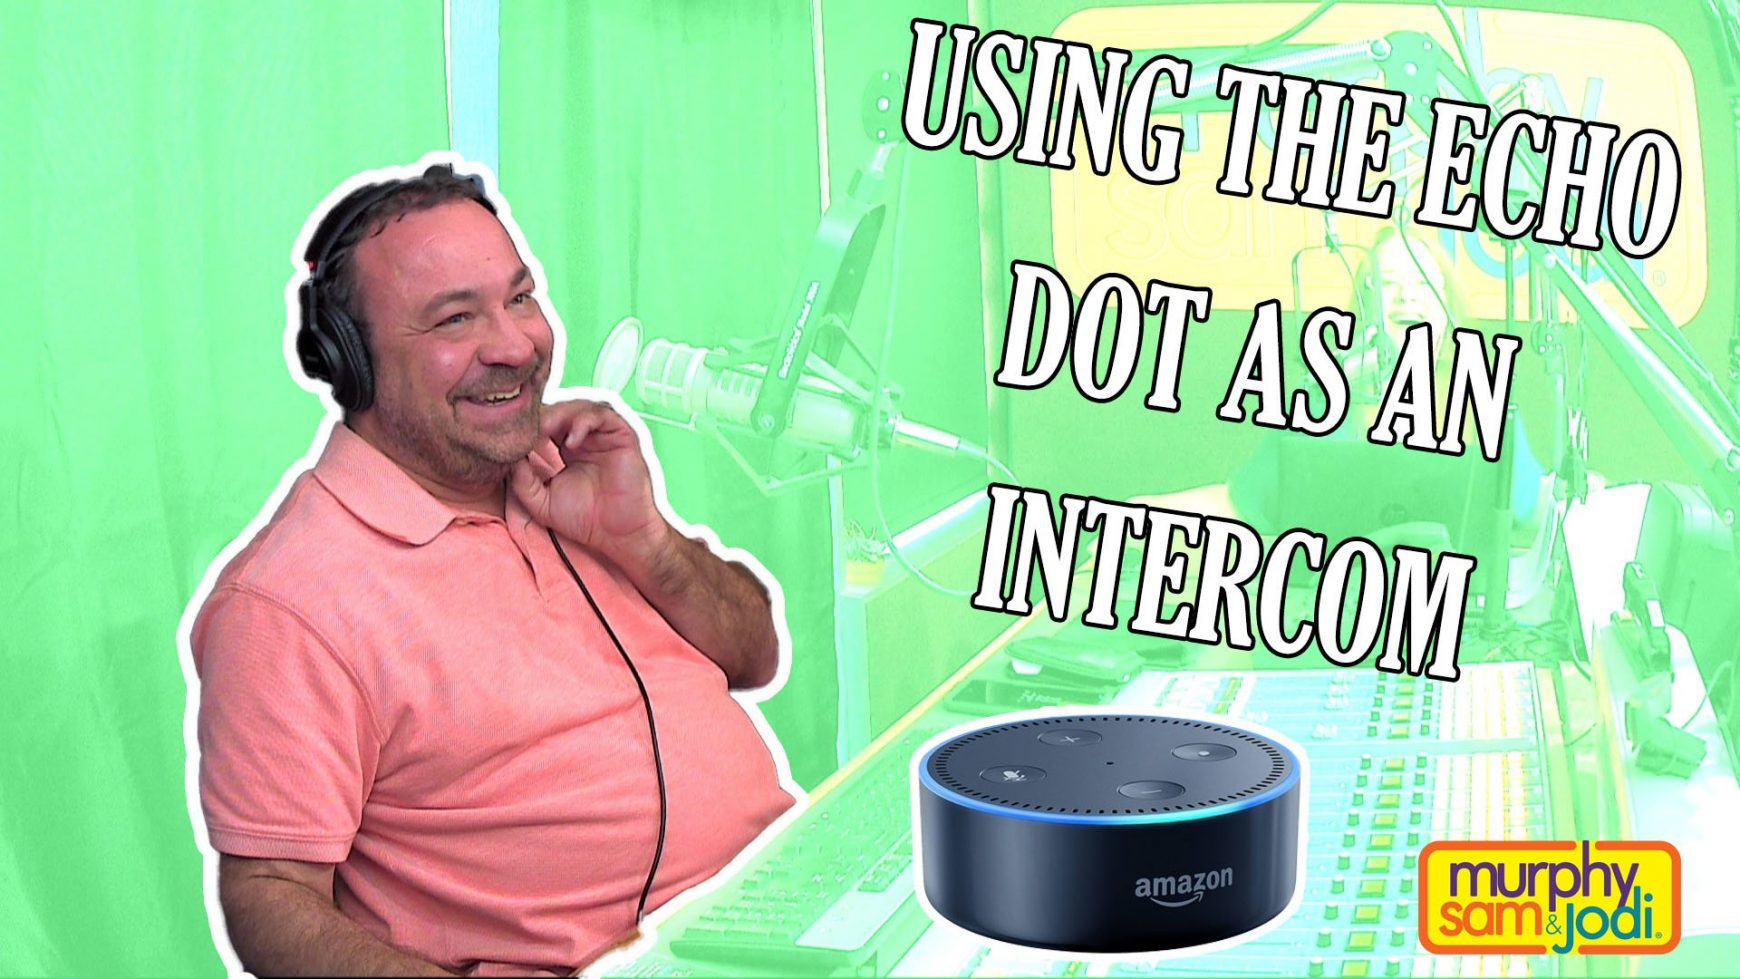 WATCH: ECHO DOT AS AN INTERCOM